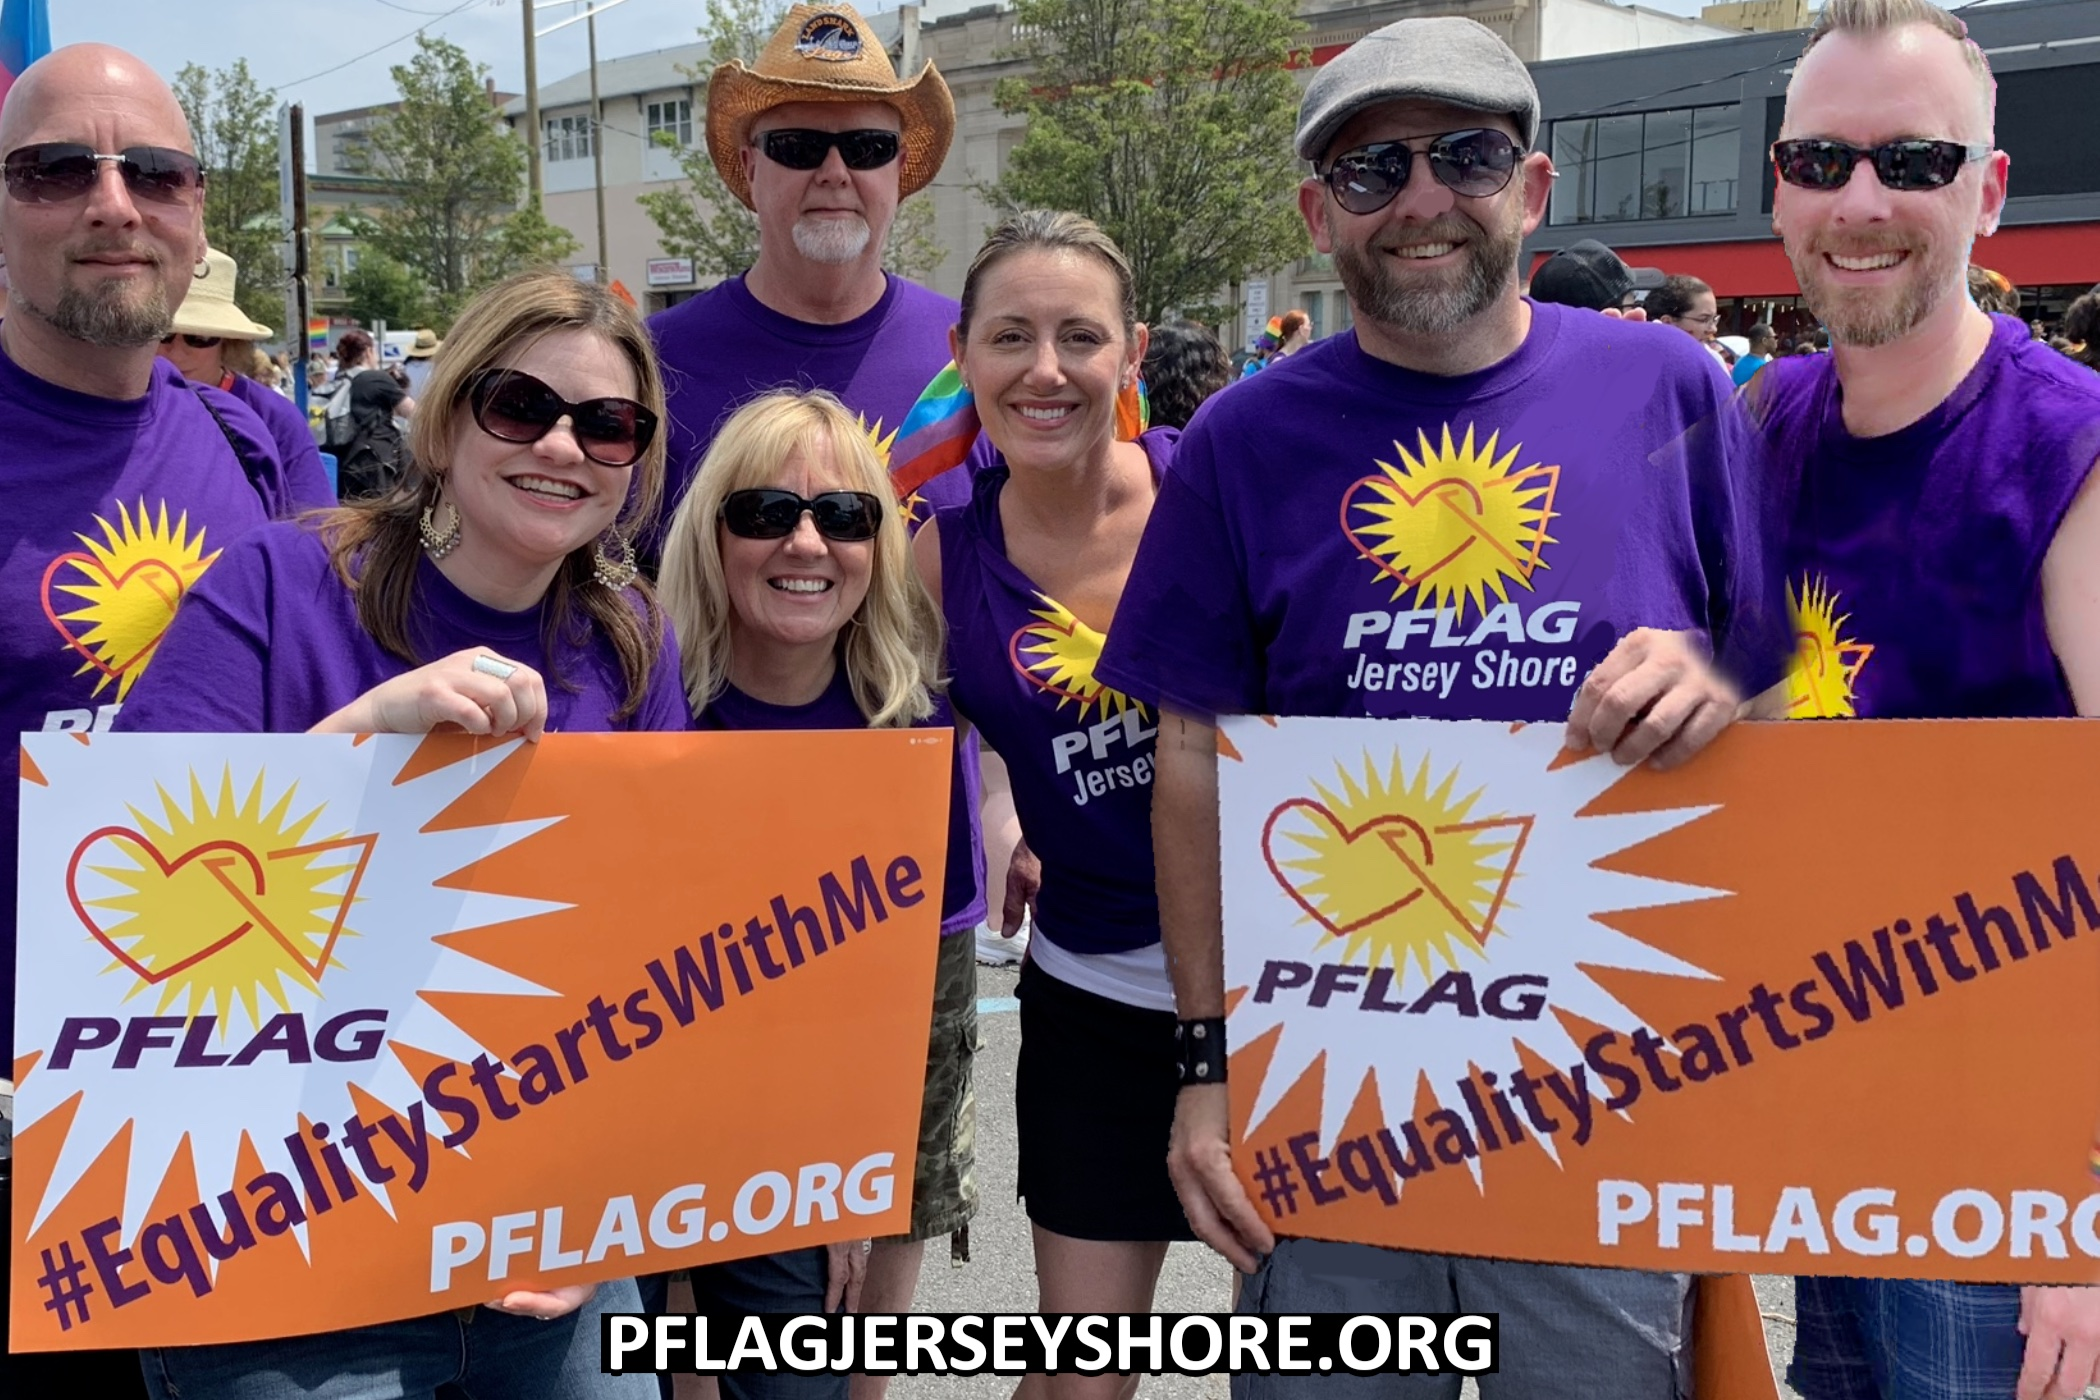 Pride in Pictures: Why I volunteer